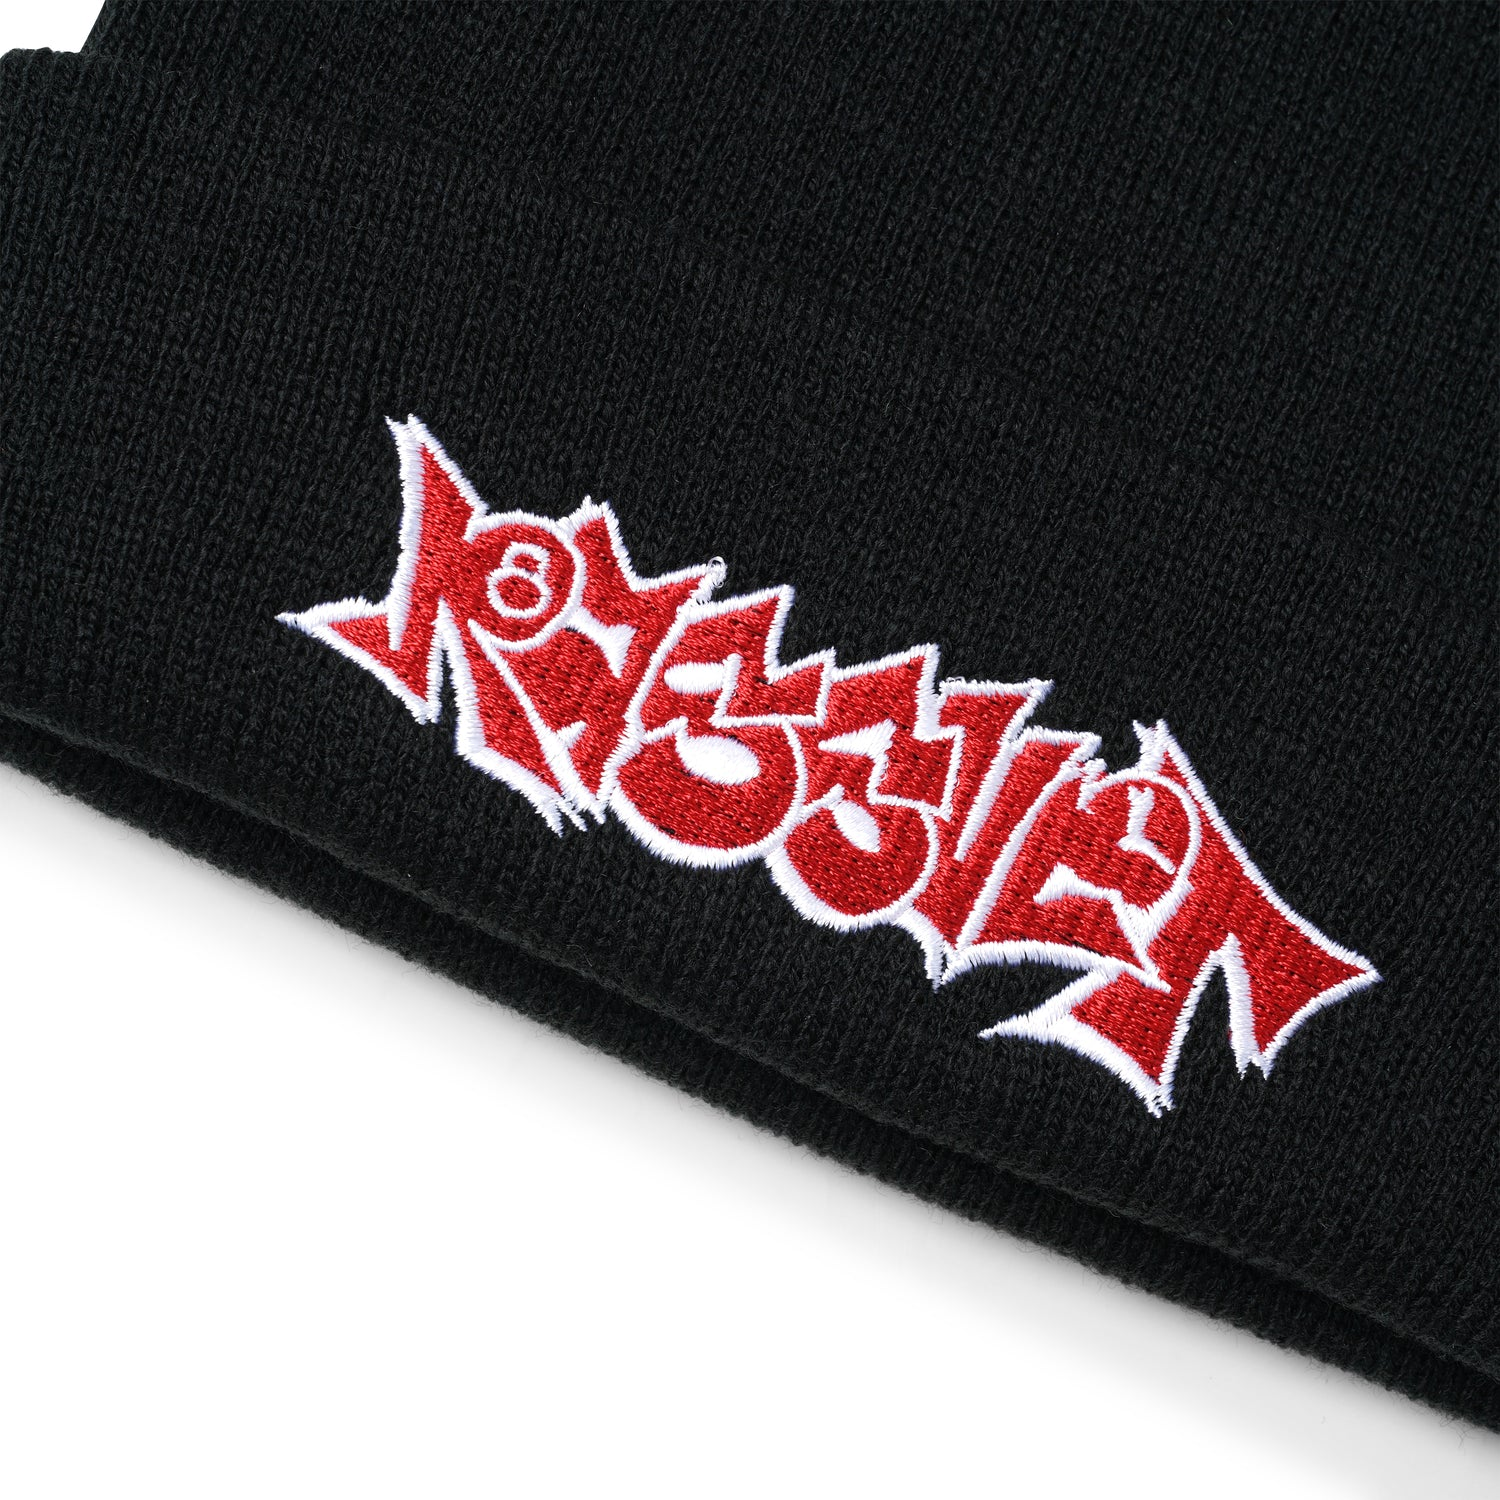 Graffiti Beanie, Black